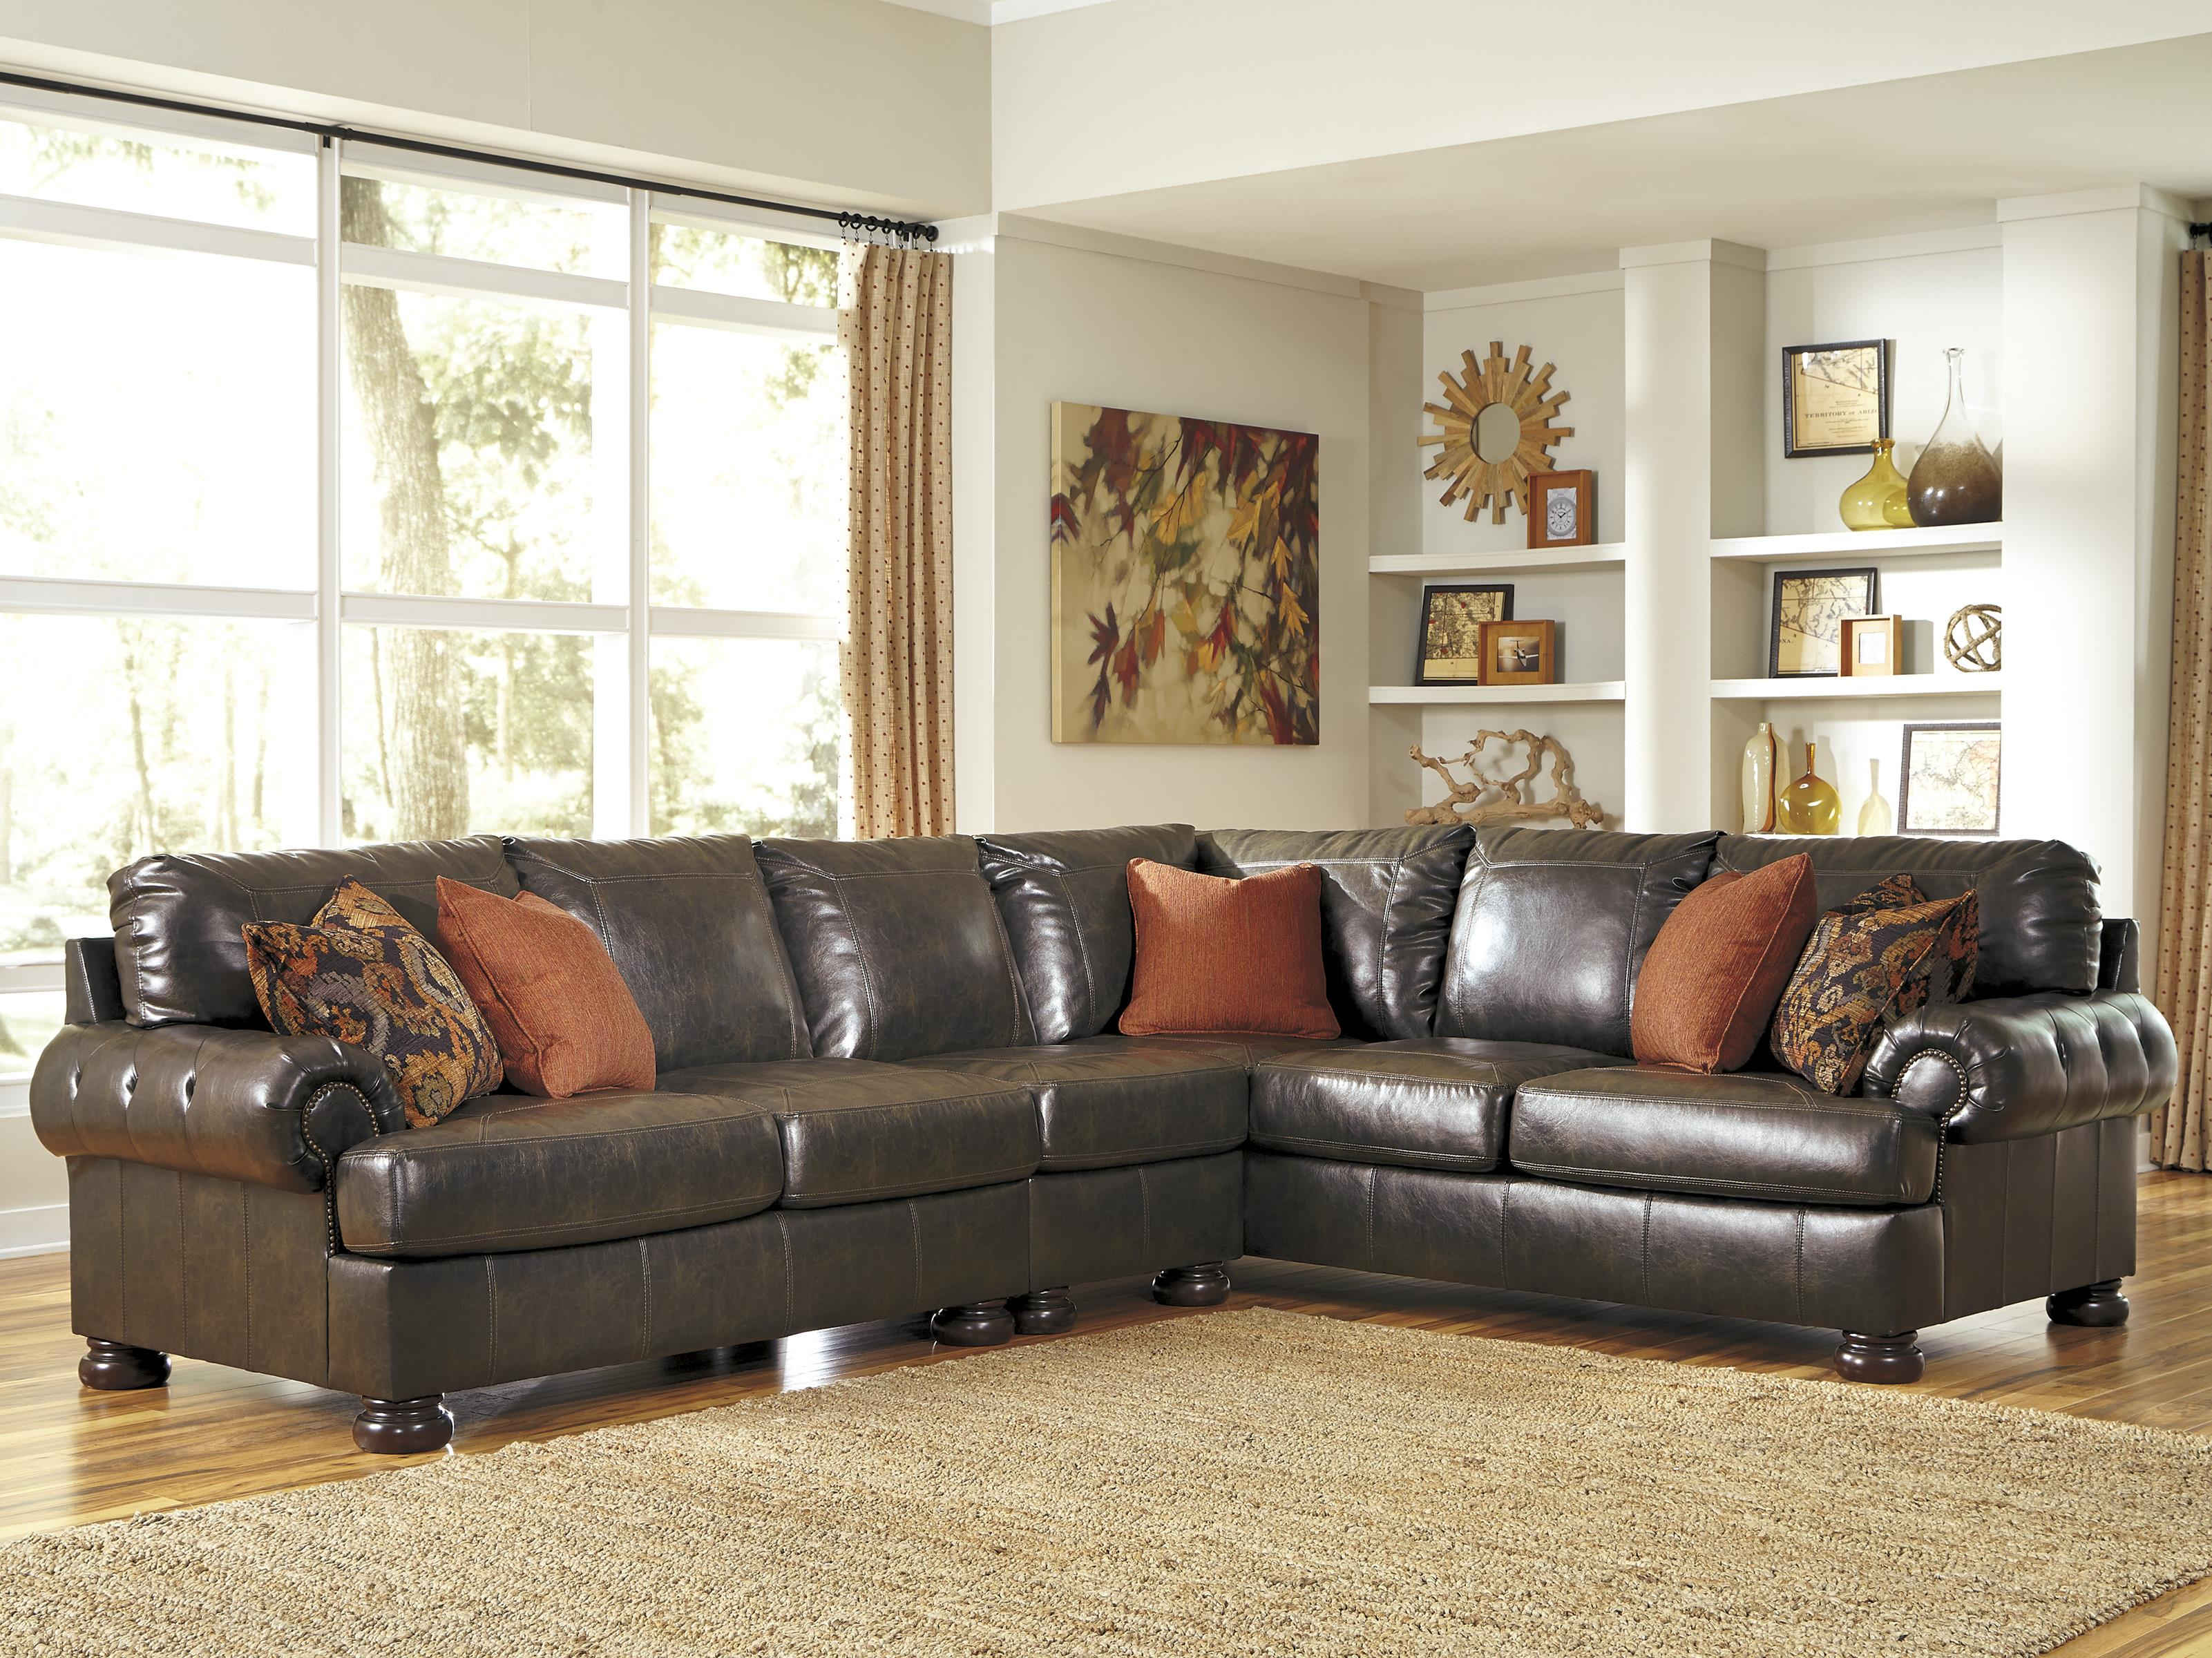 Benchcraft Nesbit DuraBlend® 3-Piece Sectional - Item Number: 3160055+46+67